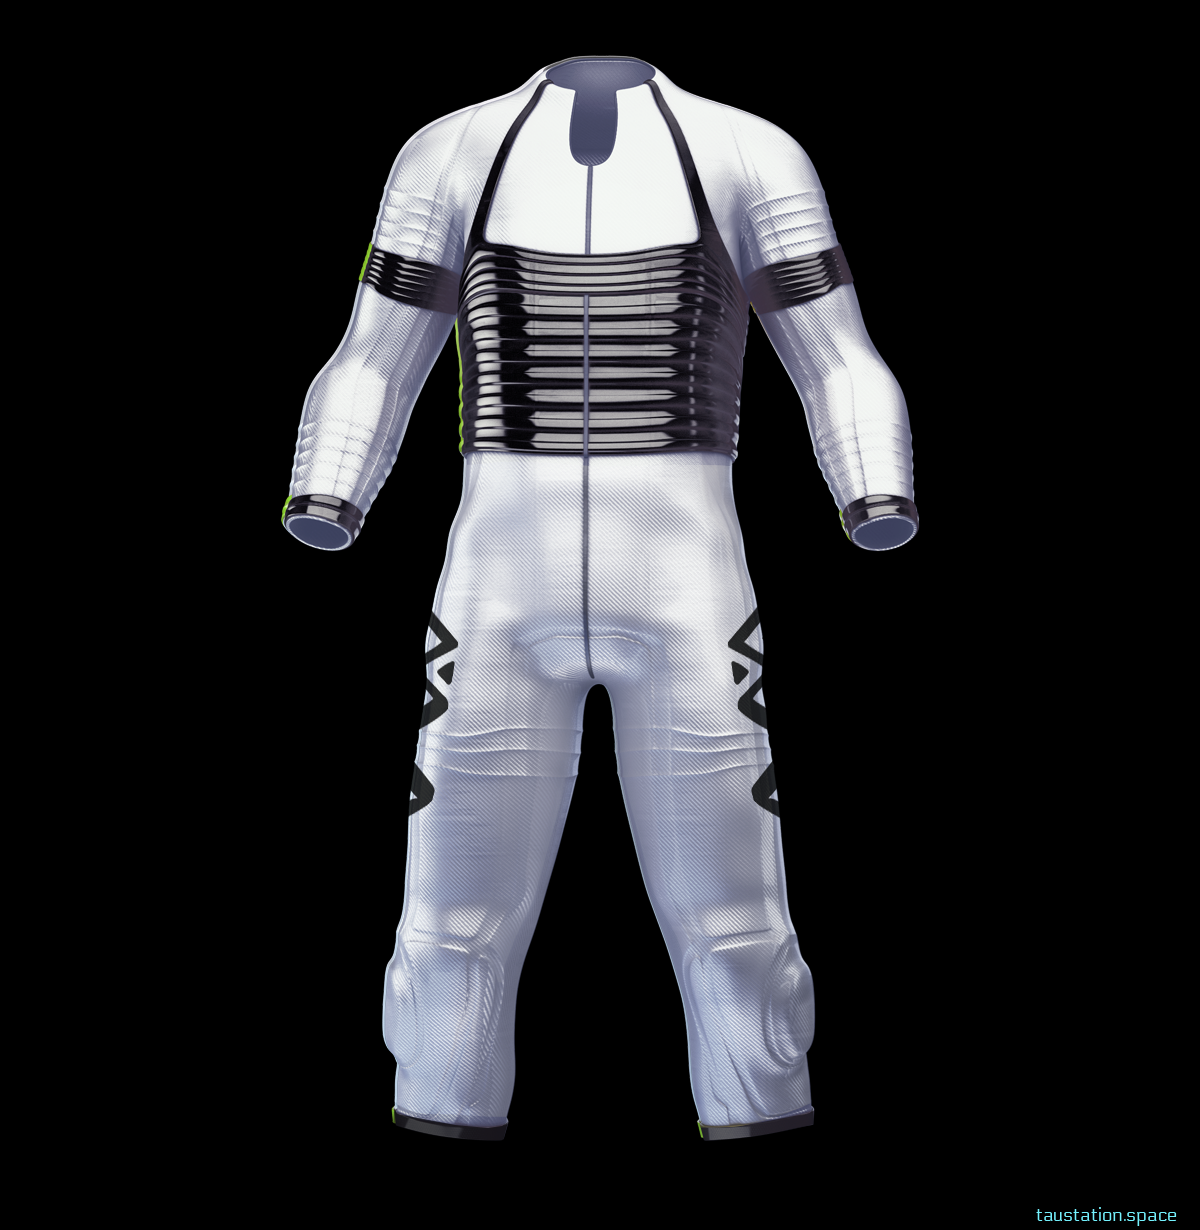 A very stylish white body suit, with solid brown chest guard elements, the cloth has a fine structure like carbon fibres.